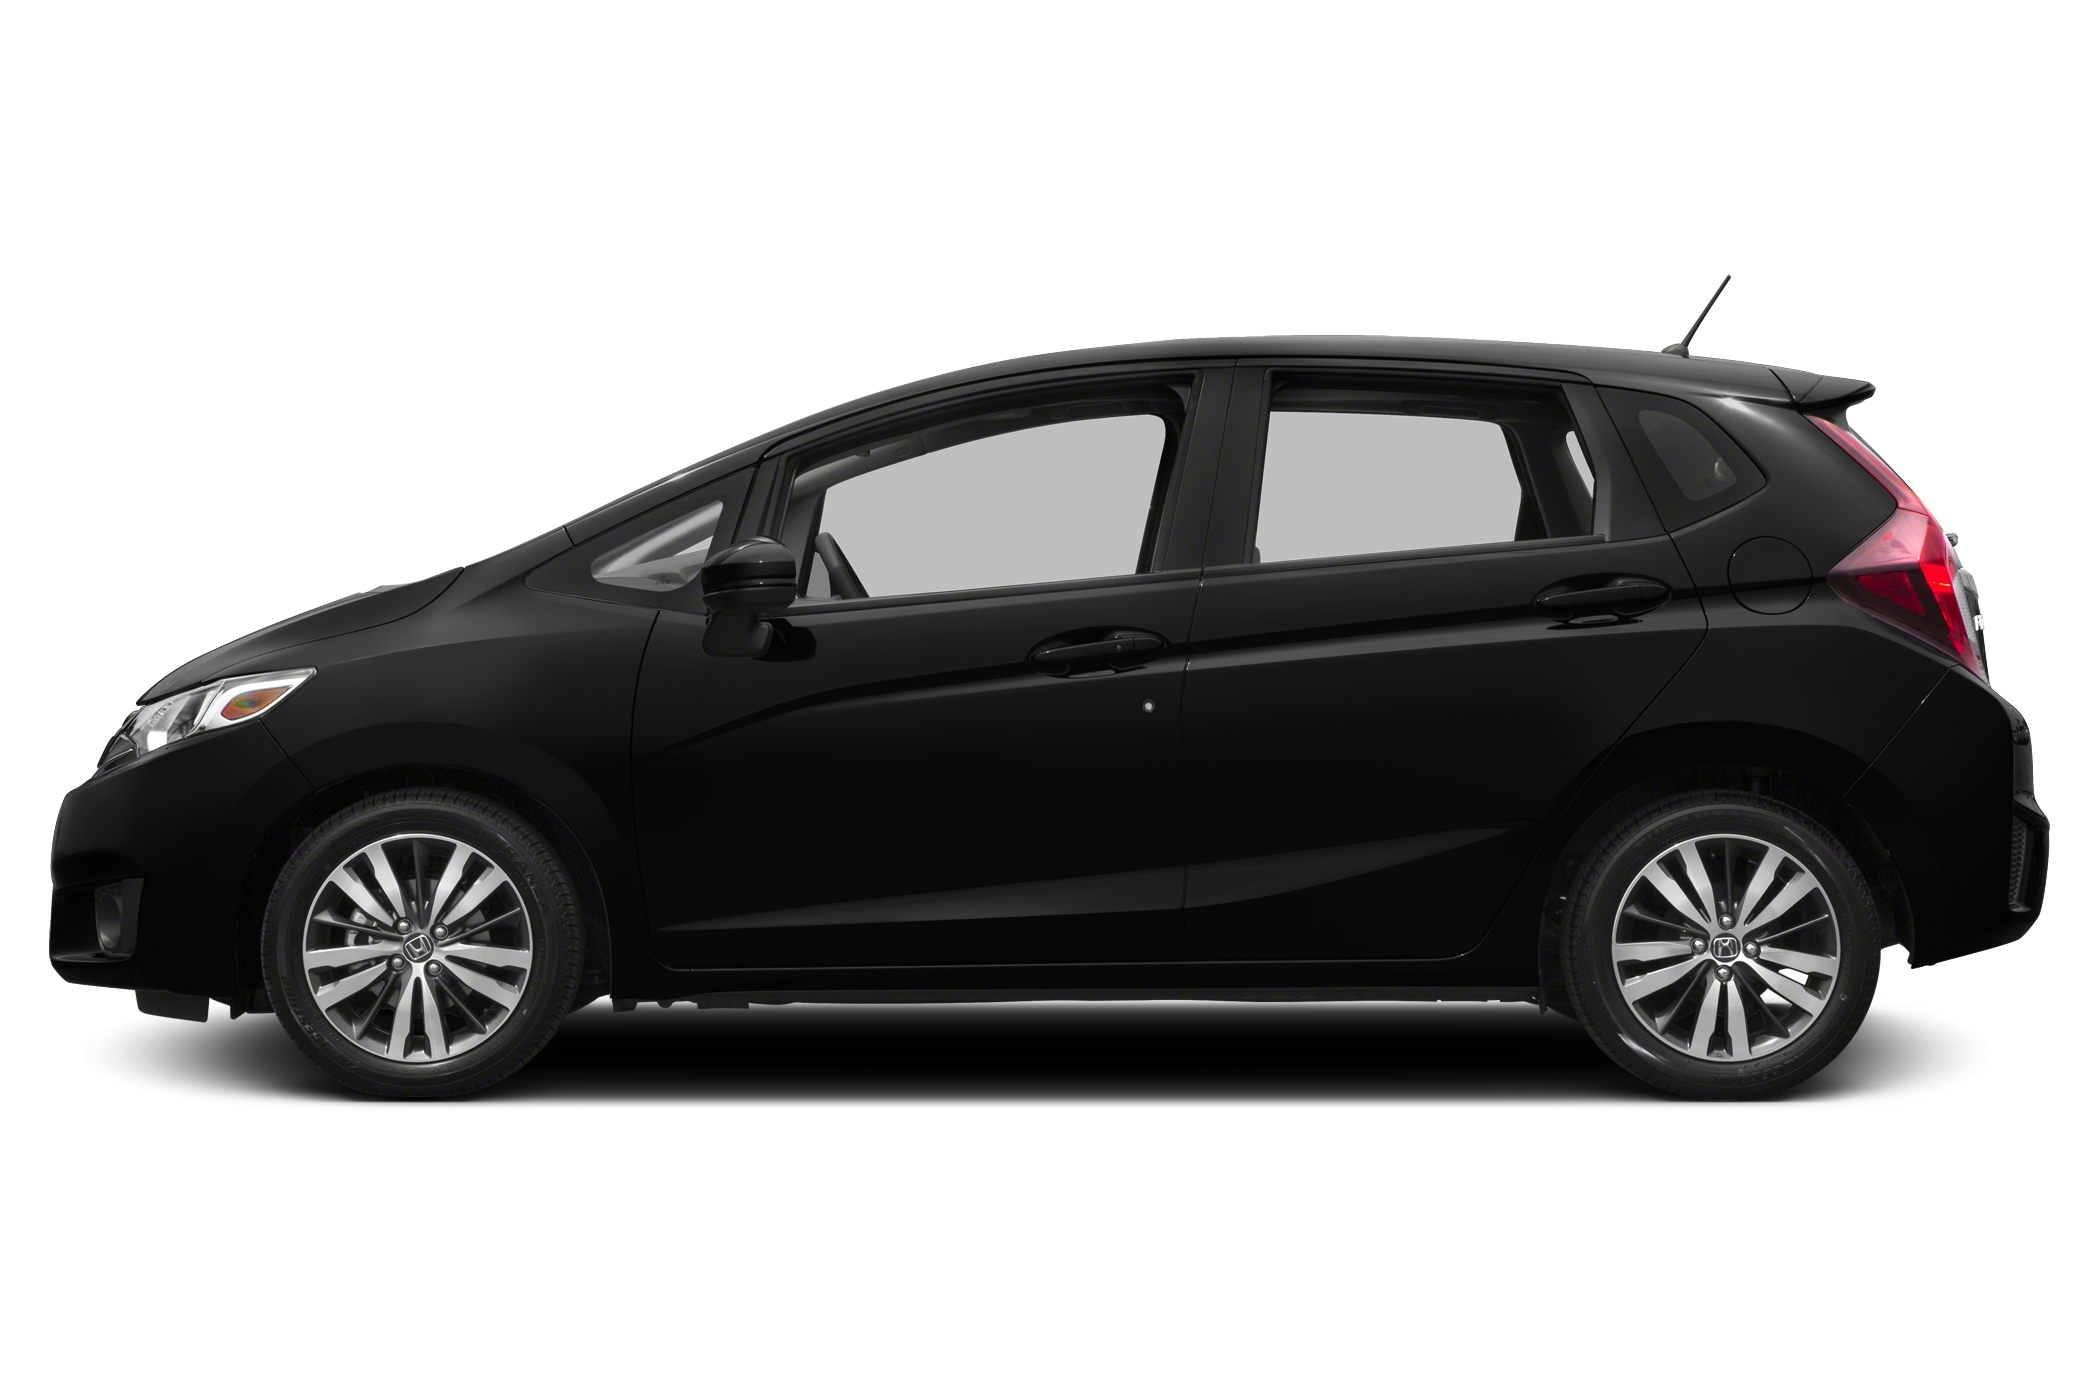 honda fit invoice price 2015 honda fit price photos reviews amp features 2100 X 1386